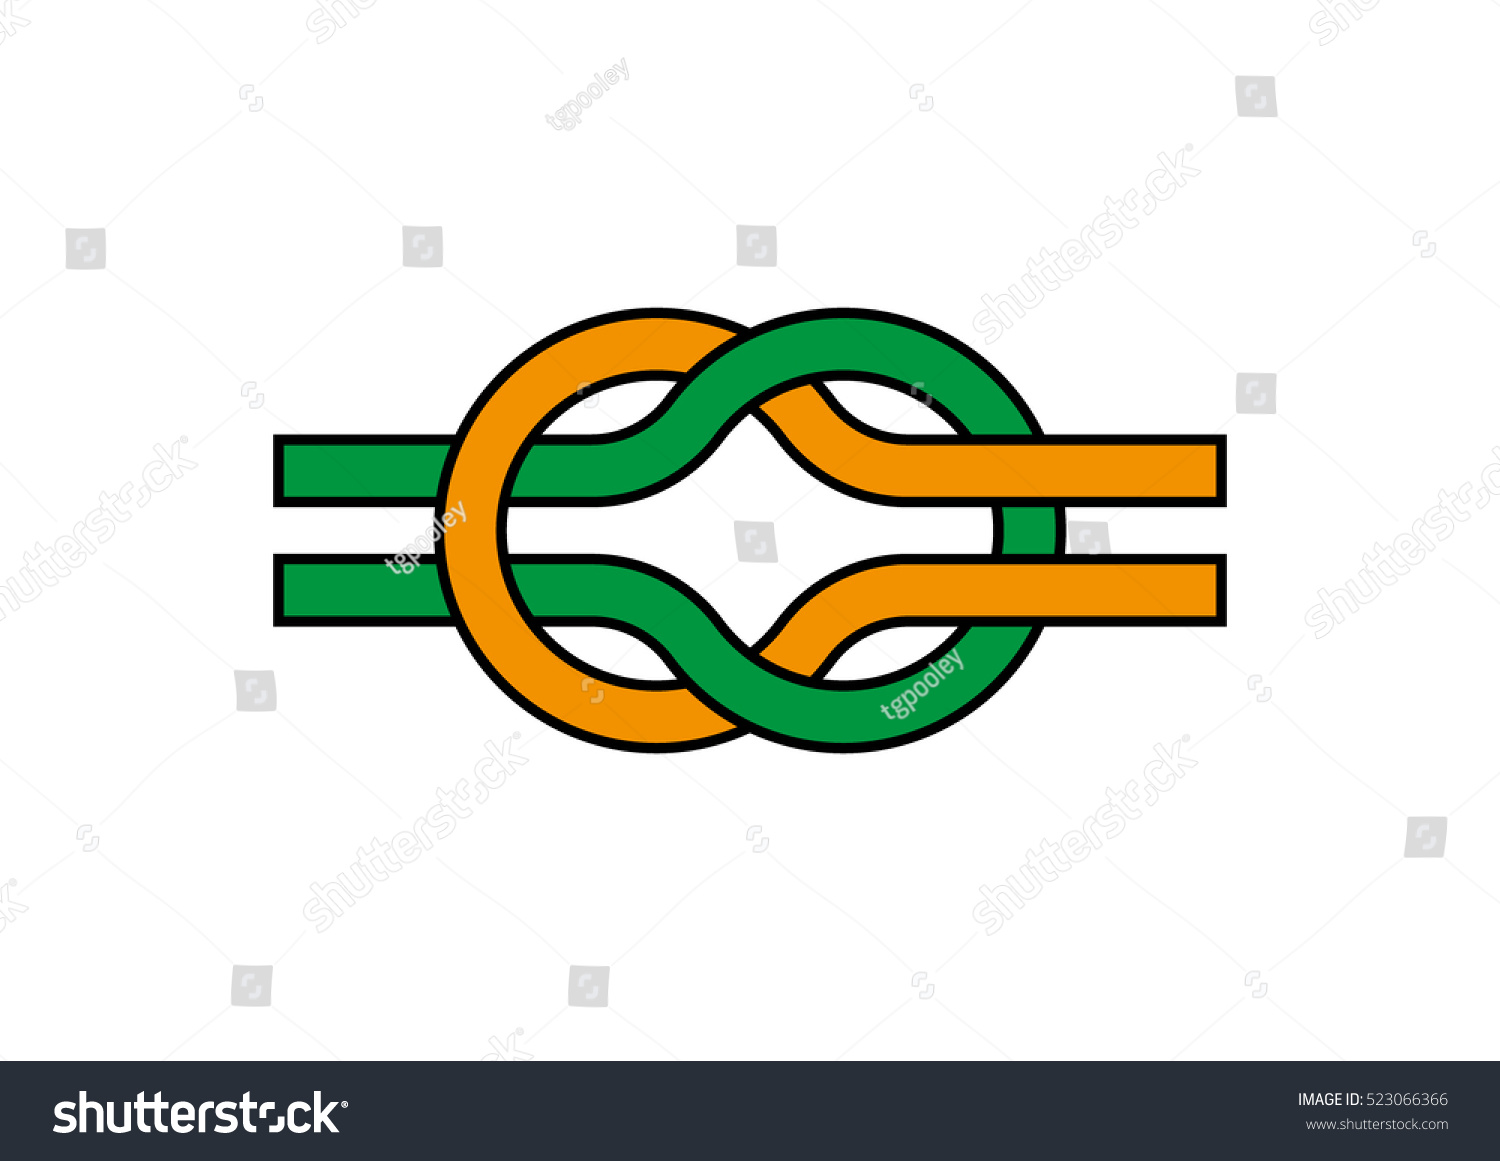 Reef Knot Reef Knot Symbol Square Stock Vector Royalty Free